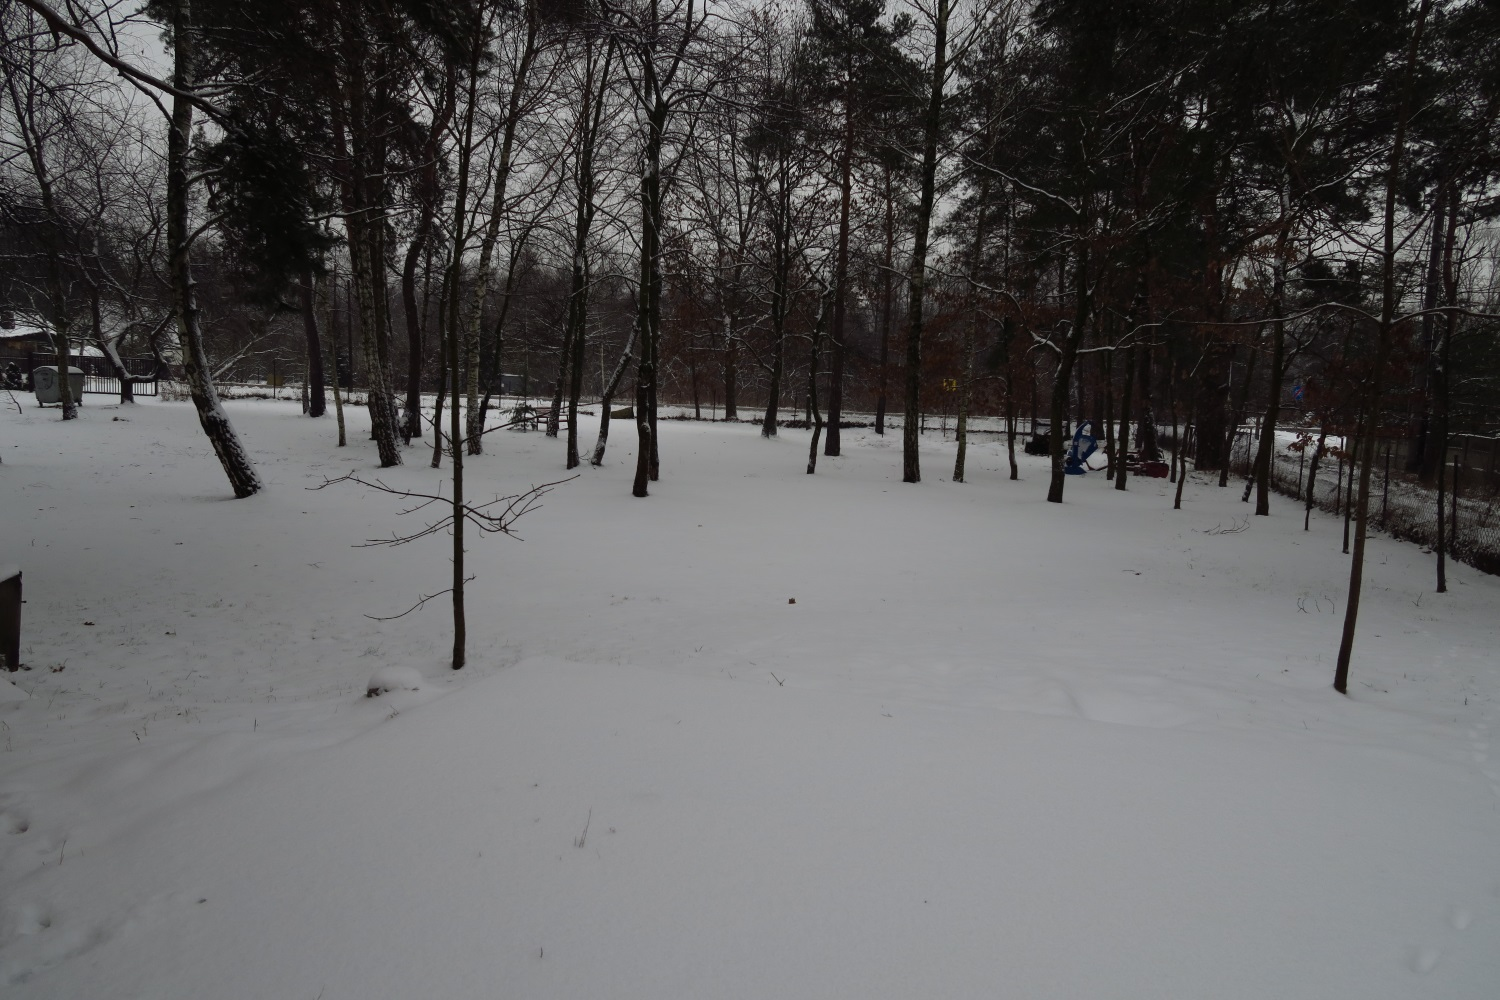 """Wed. morning update - It snowed all night and this is what we ended up with - about 2 - 2.5"""". Obviously it's not snowing very hard!"""